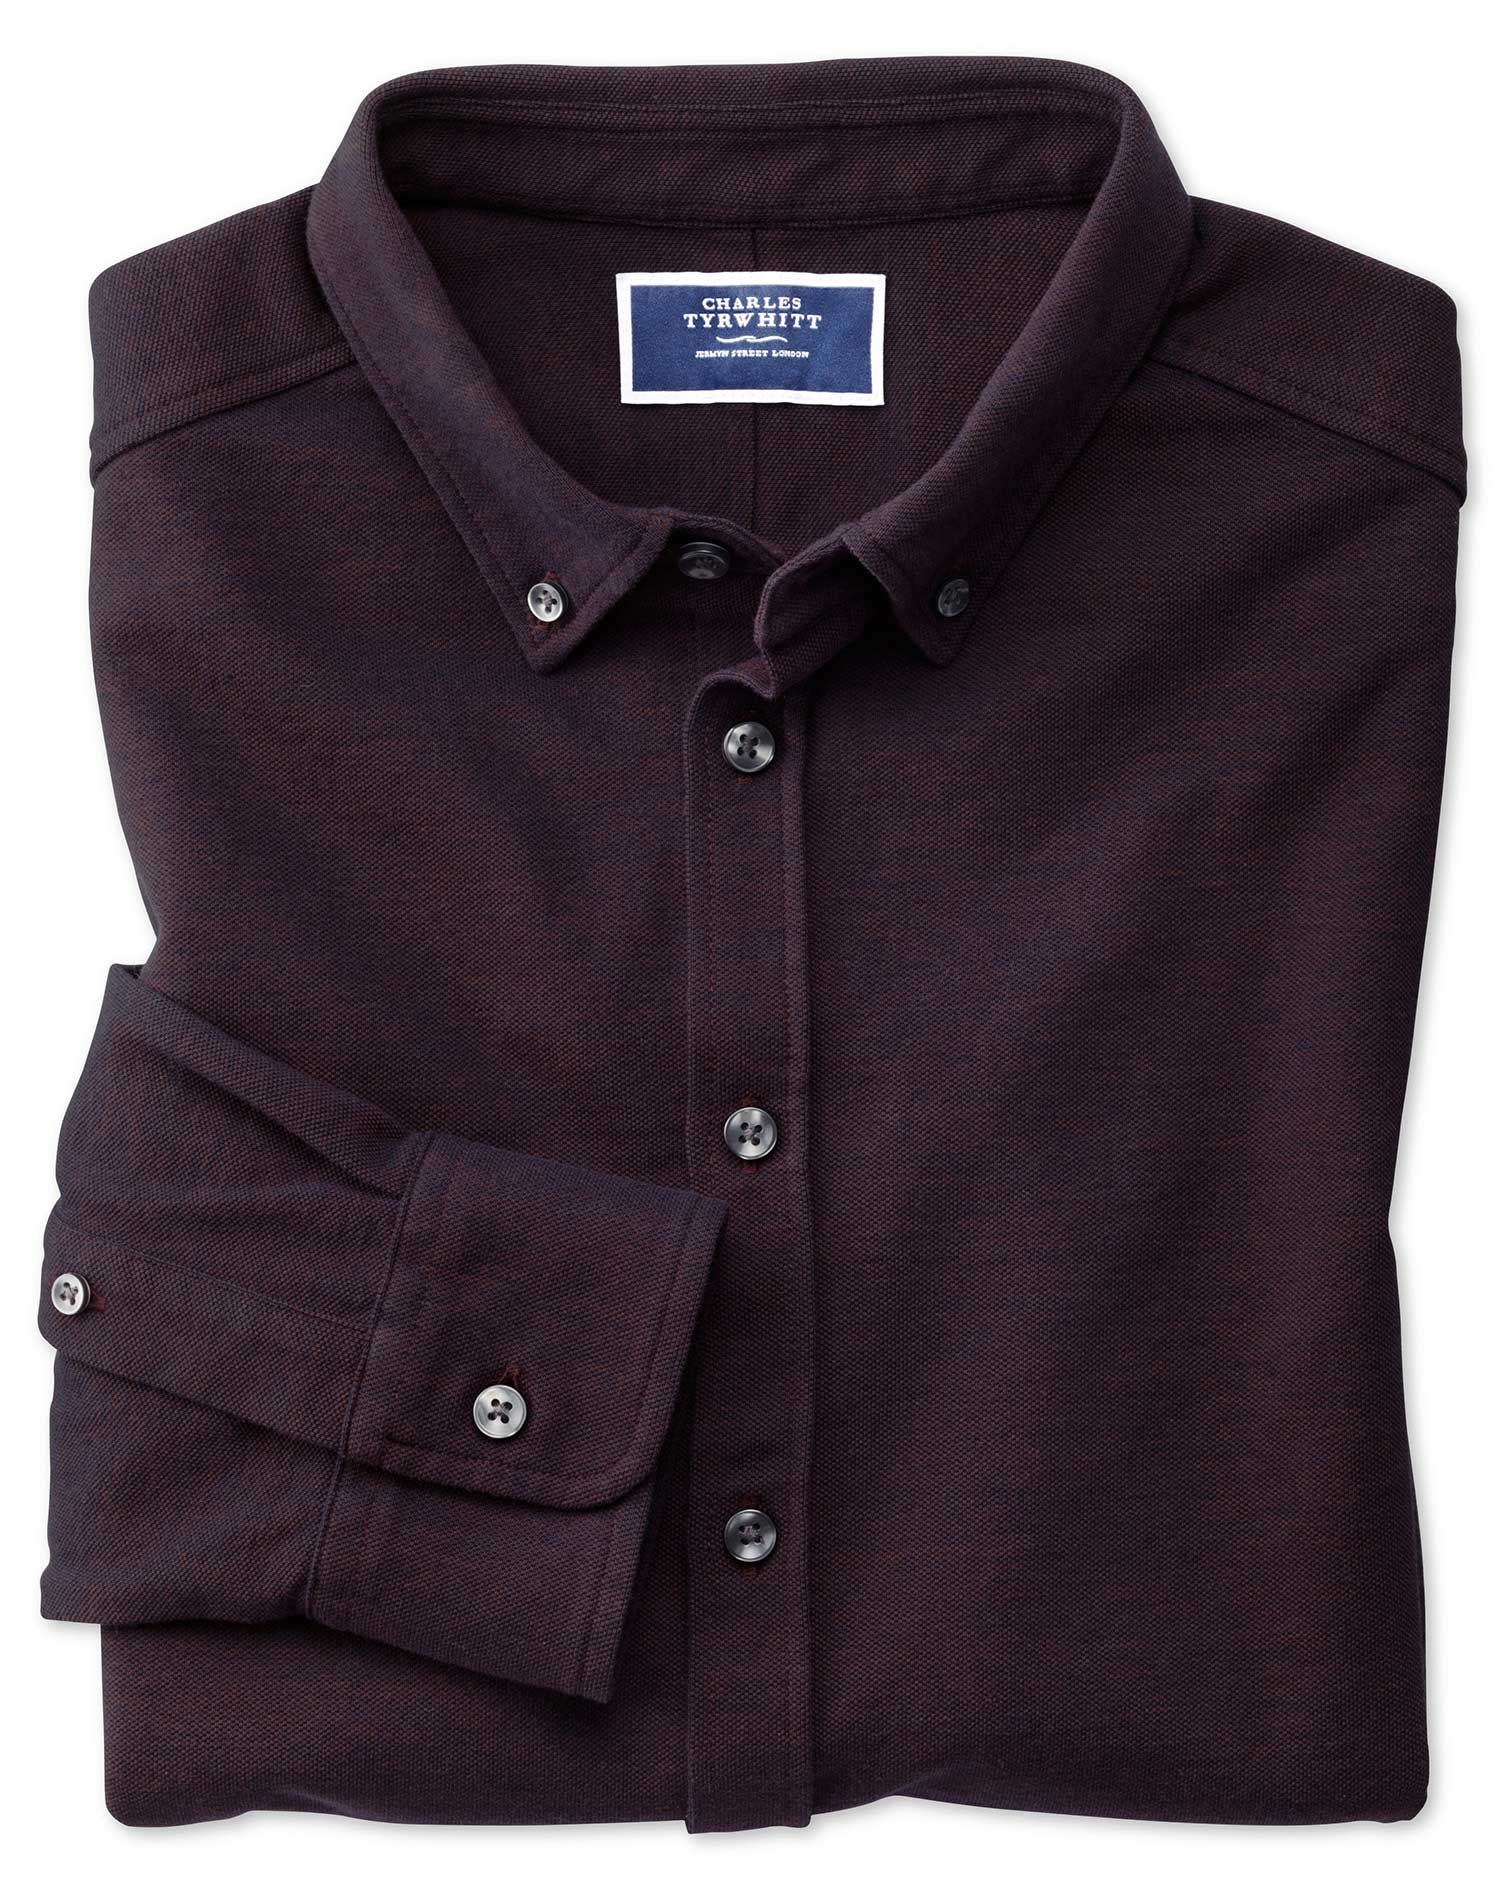 Wine Oxford Jersey Shirt Size XS by Charles Tyrwhitt from Charles Tyrwhitt